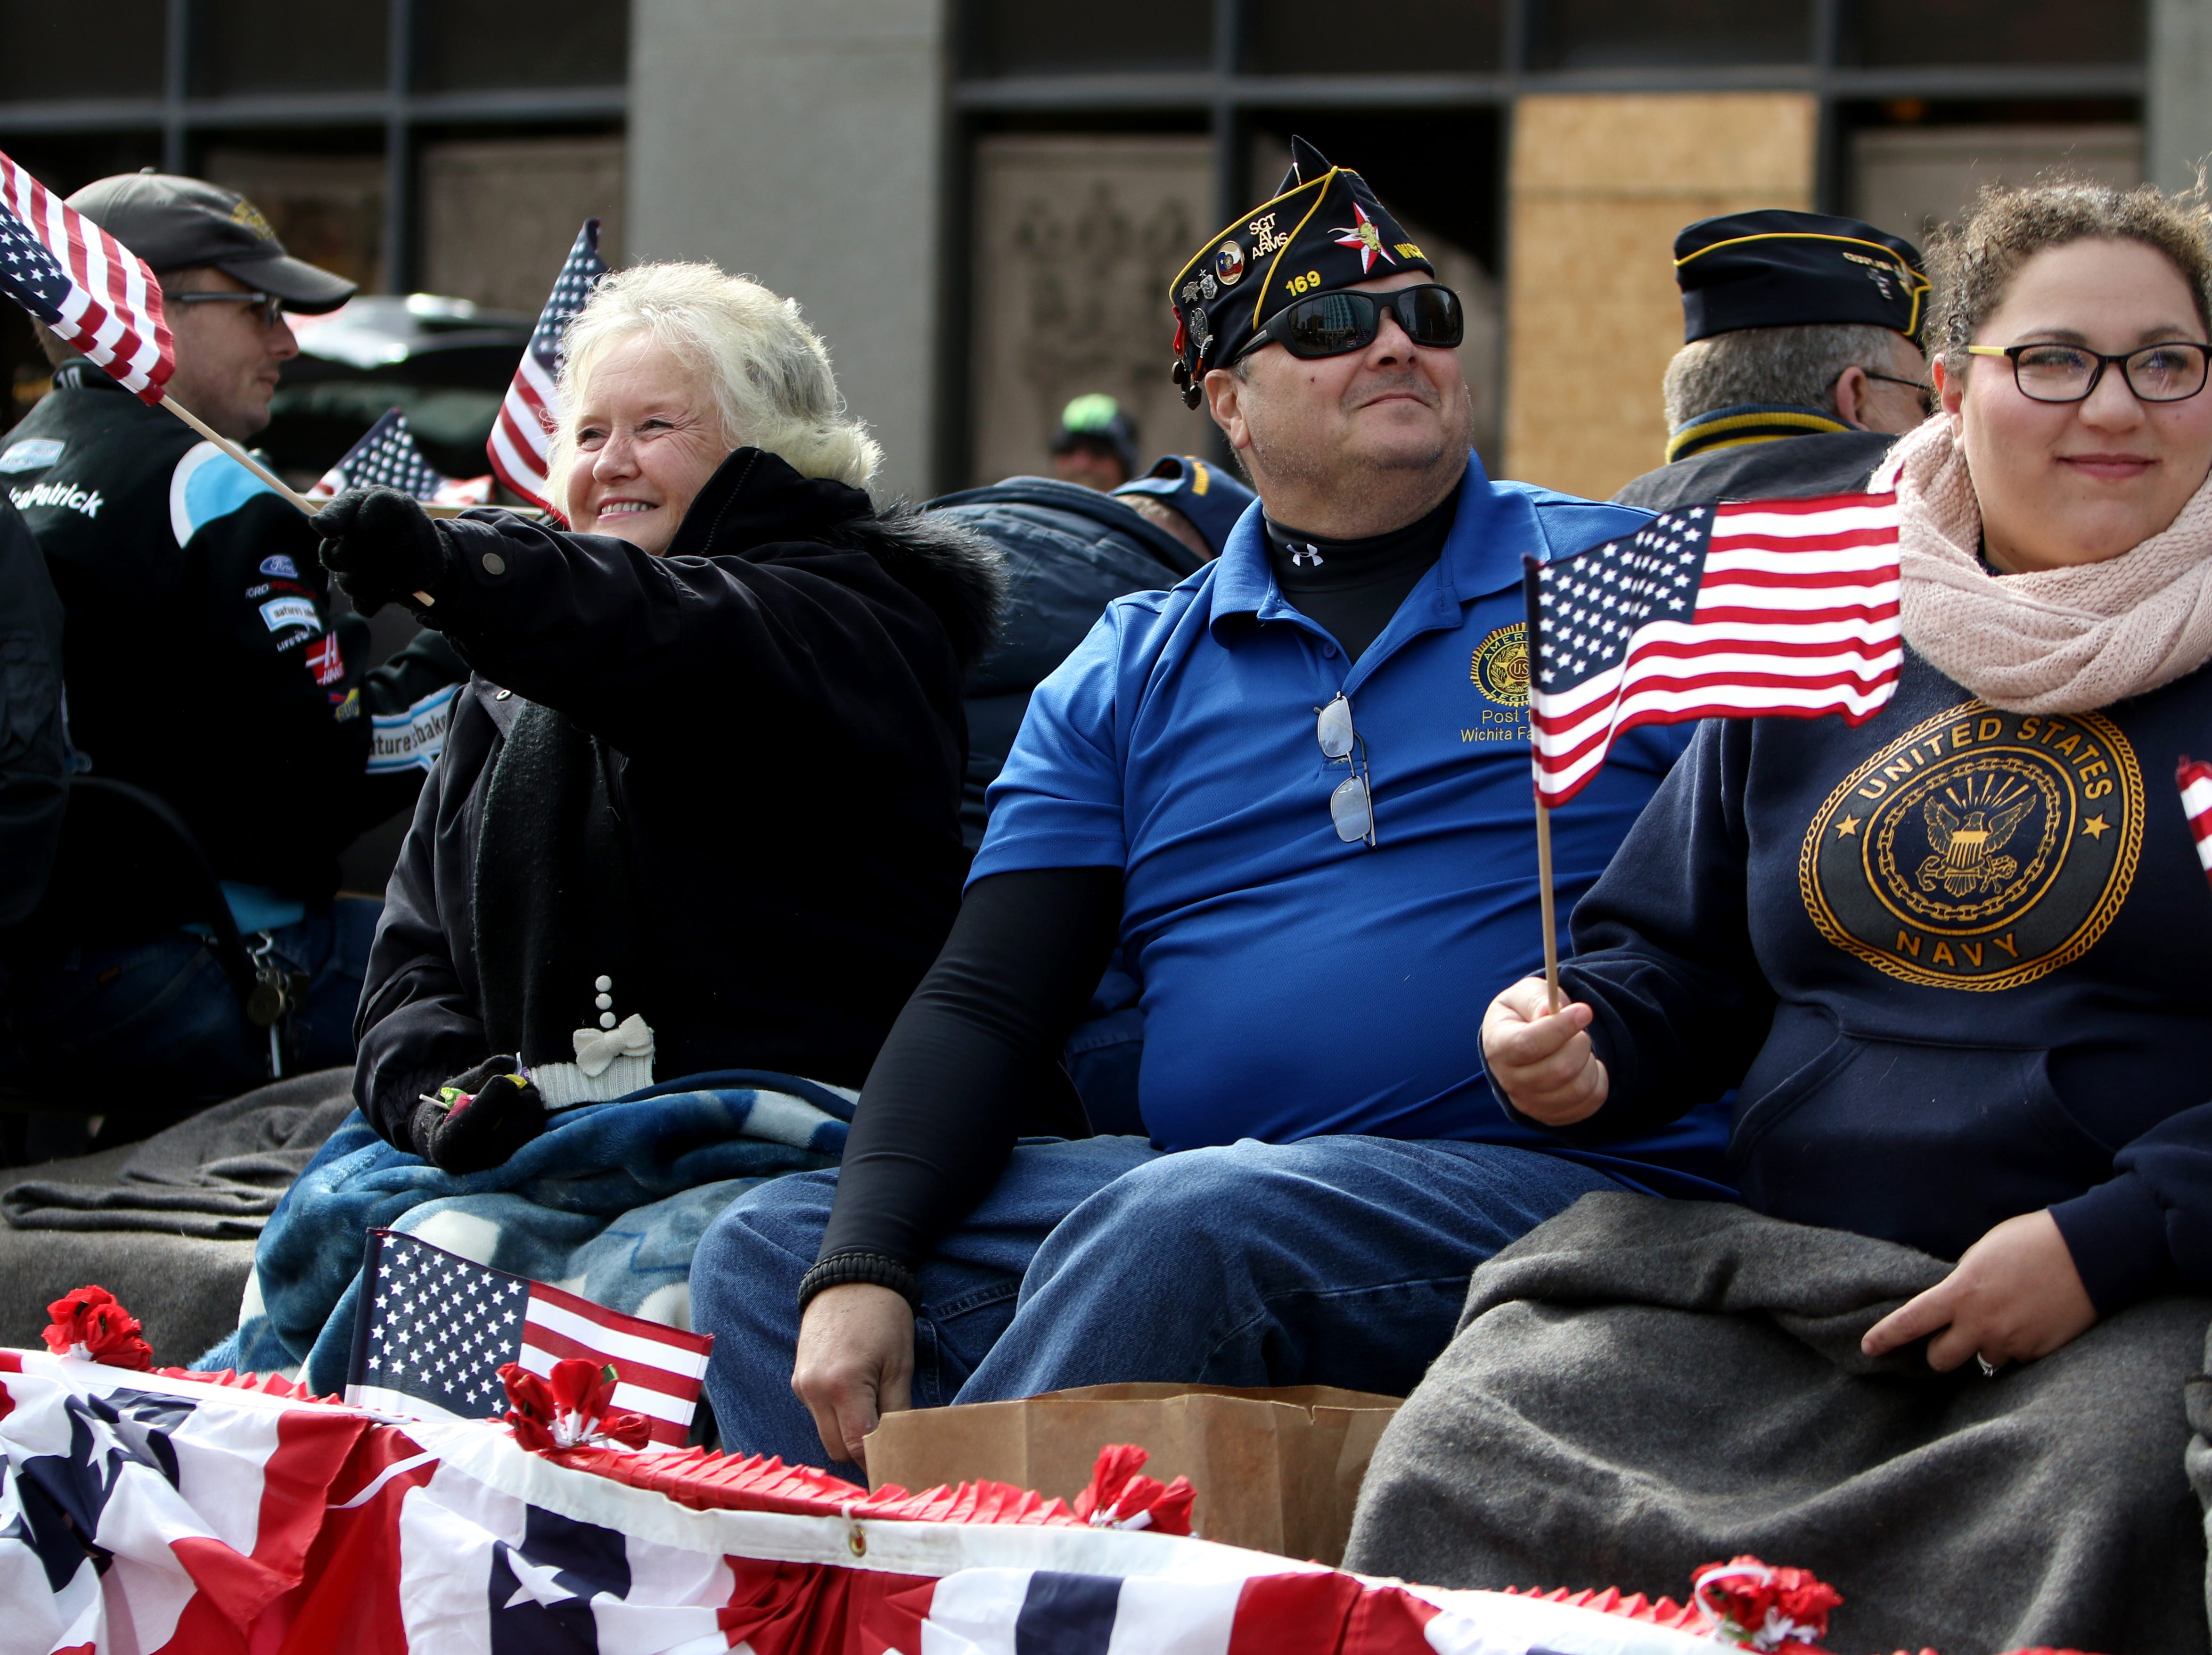 The American Legion Post #169 takes part in the Veterans Day parade Saturday, Nov. 10, 2018, in downtown Wichita Falls on the 100th anniversary of the Armistice of Compiègne that ended fighting in World War I.